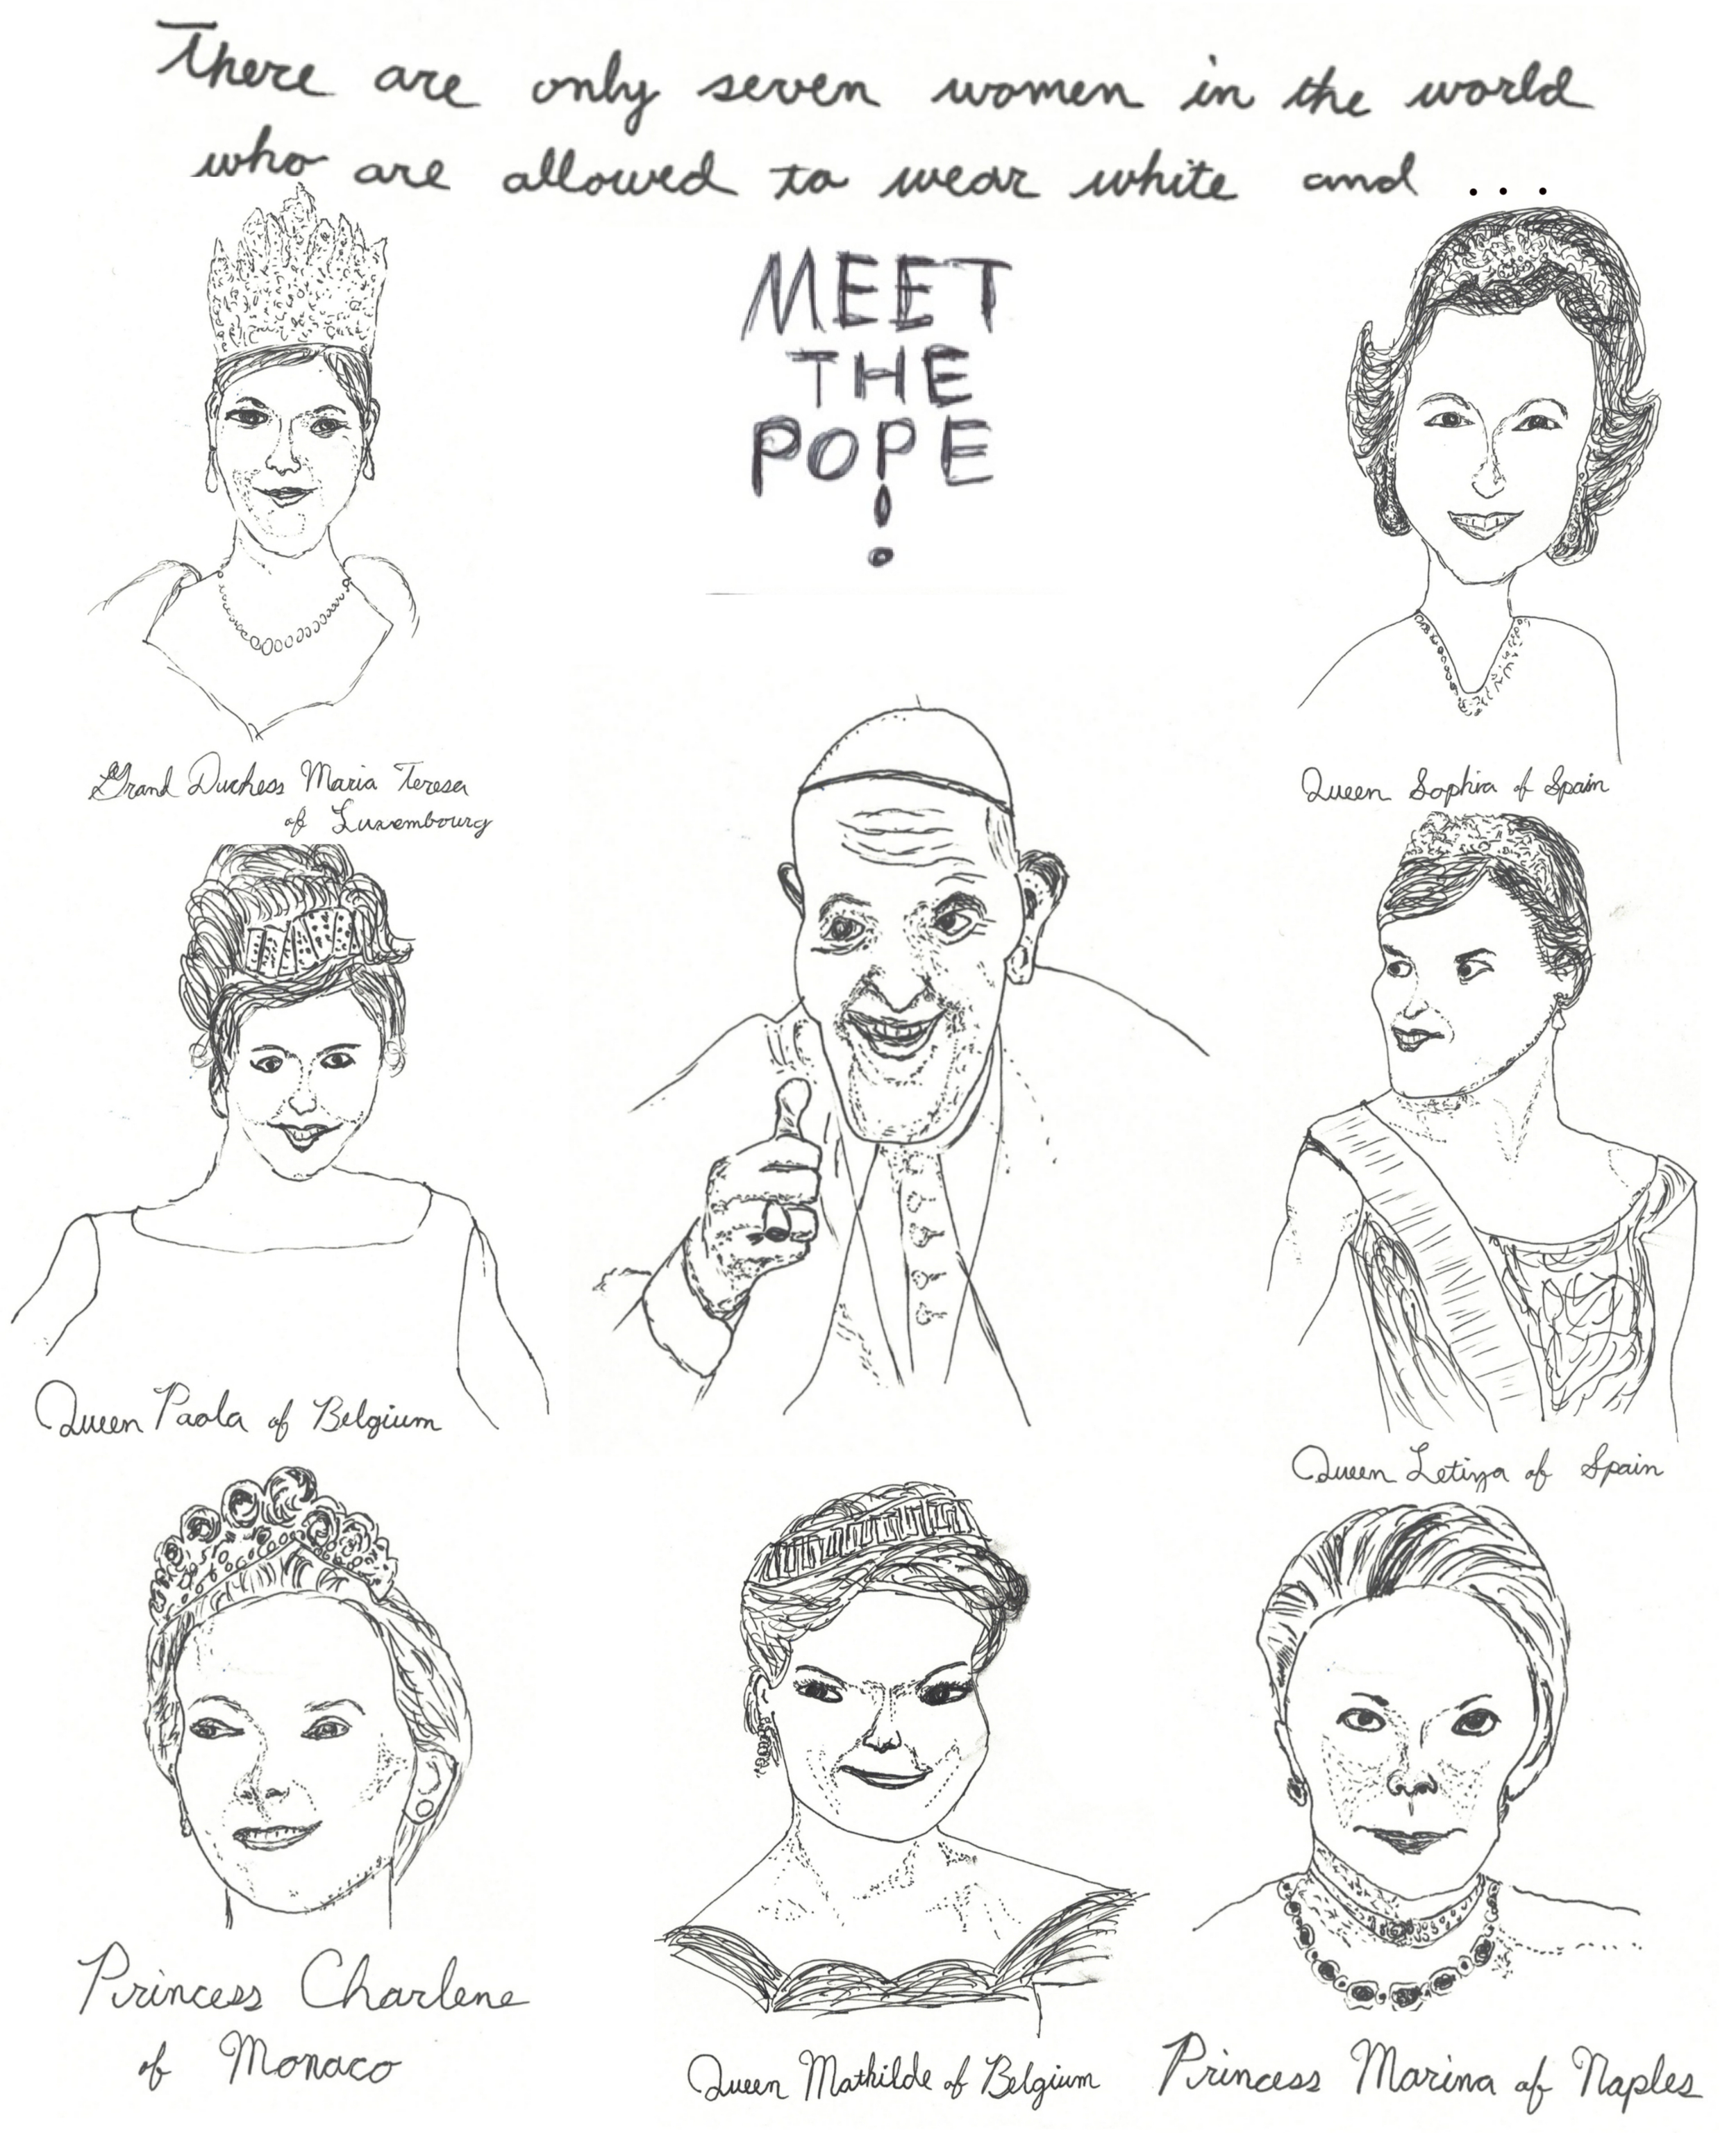 Meet the Pope!